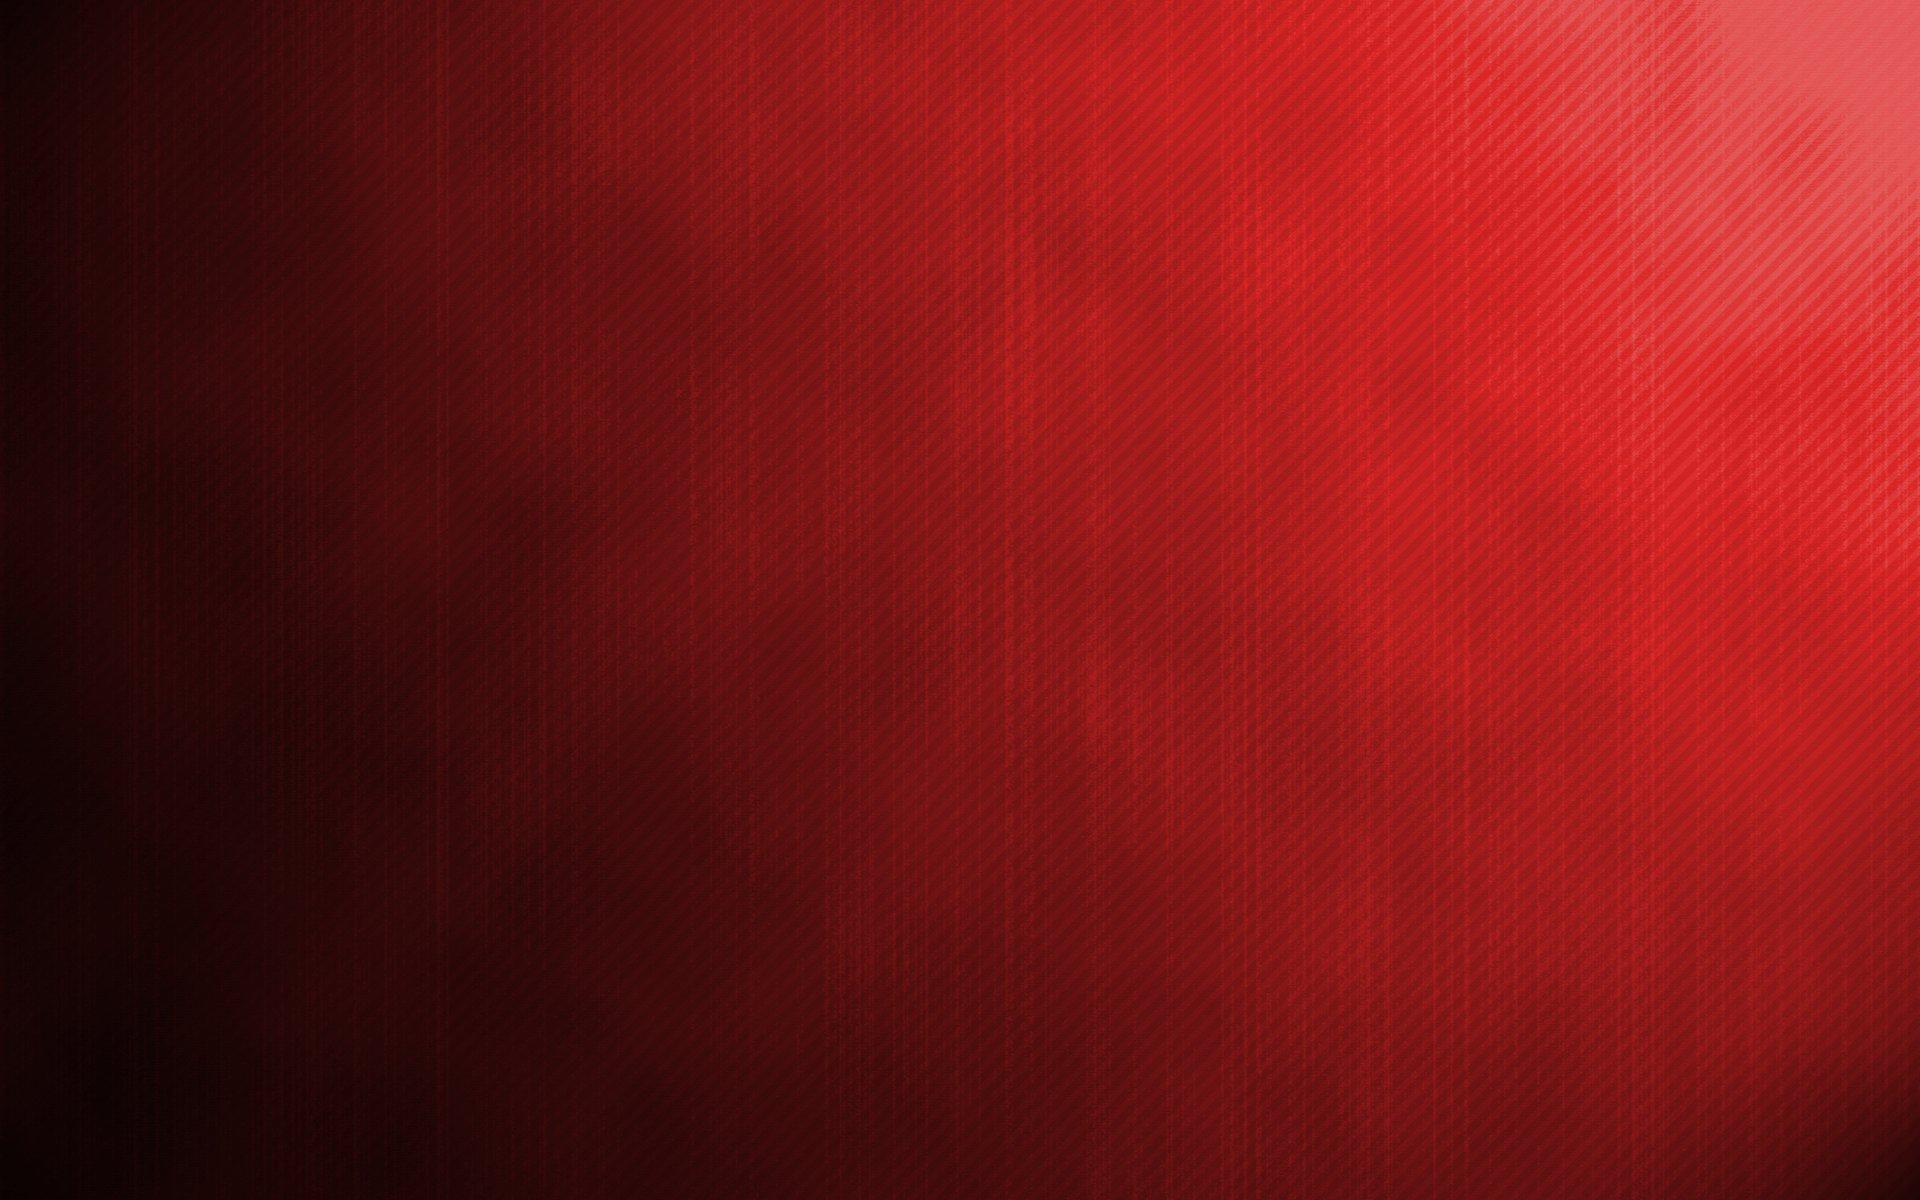 Dark Red Metal Backgrounds For PowerPoint   Curves PPT Templates 1920x1200